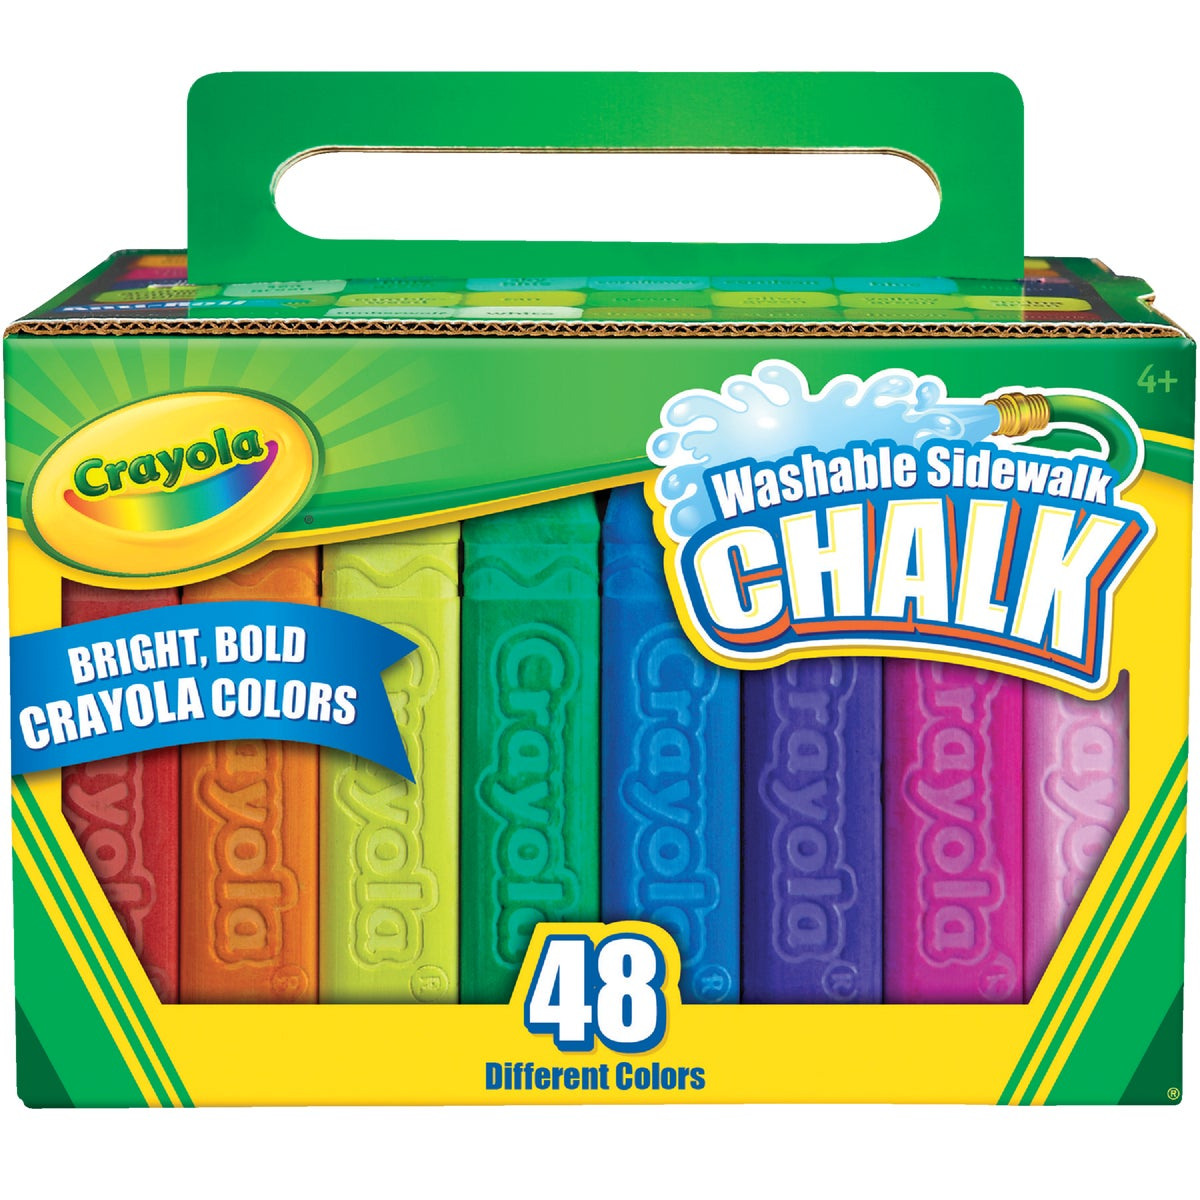 48CT SIDEWALK CHALK - 51-2048 by Crayola L L C